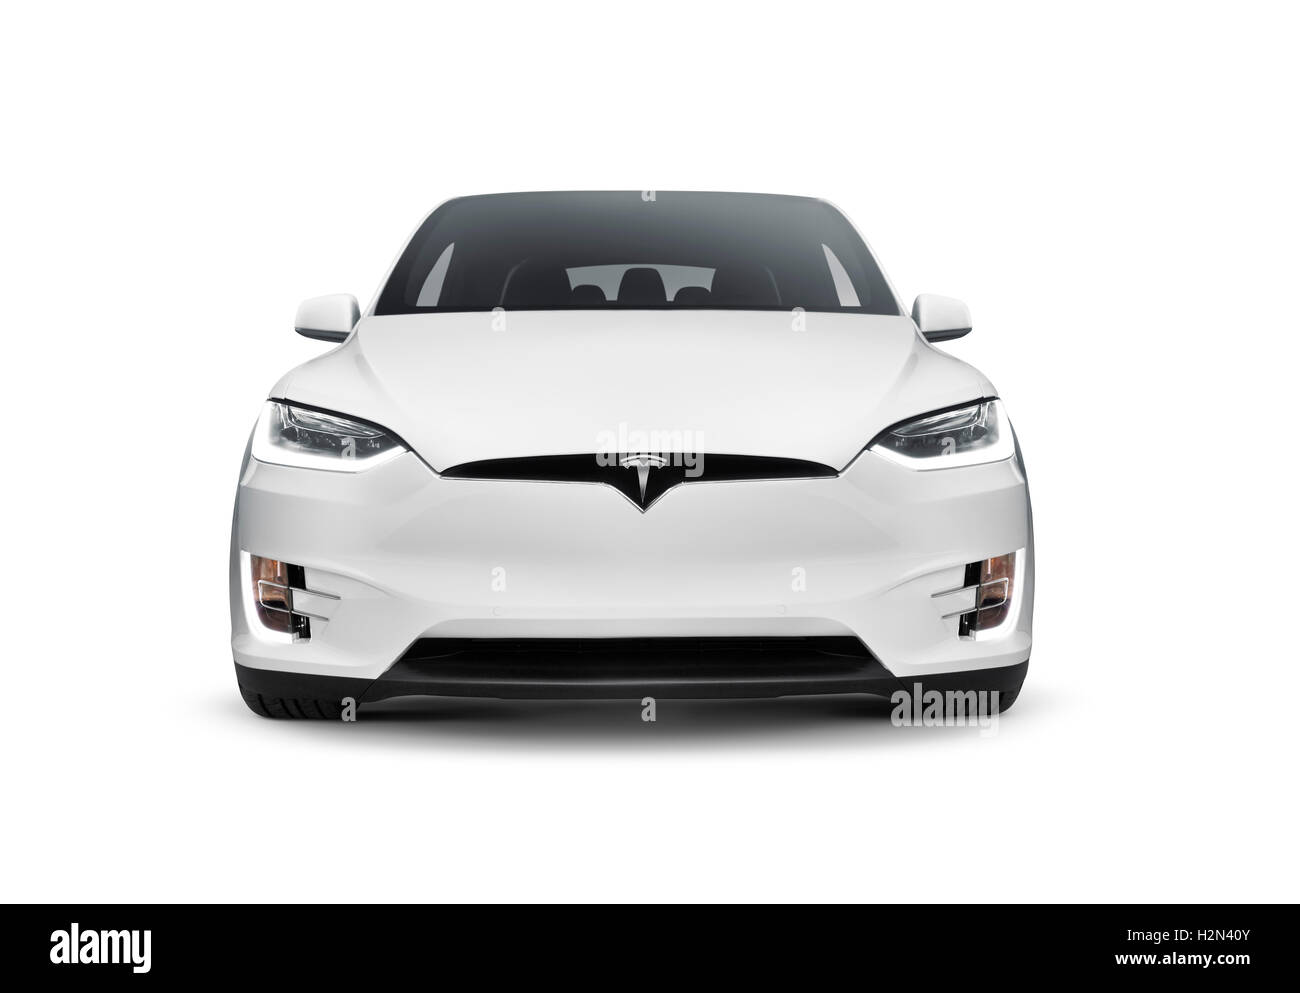 White Tesla Model X Luxury Suv Electric Car Front View